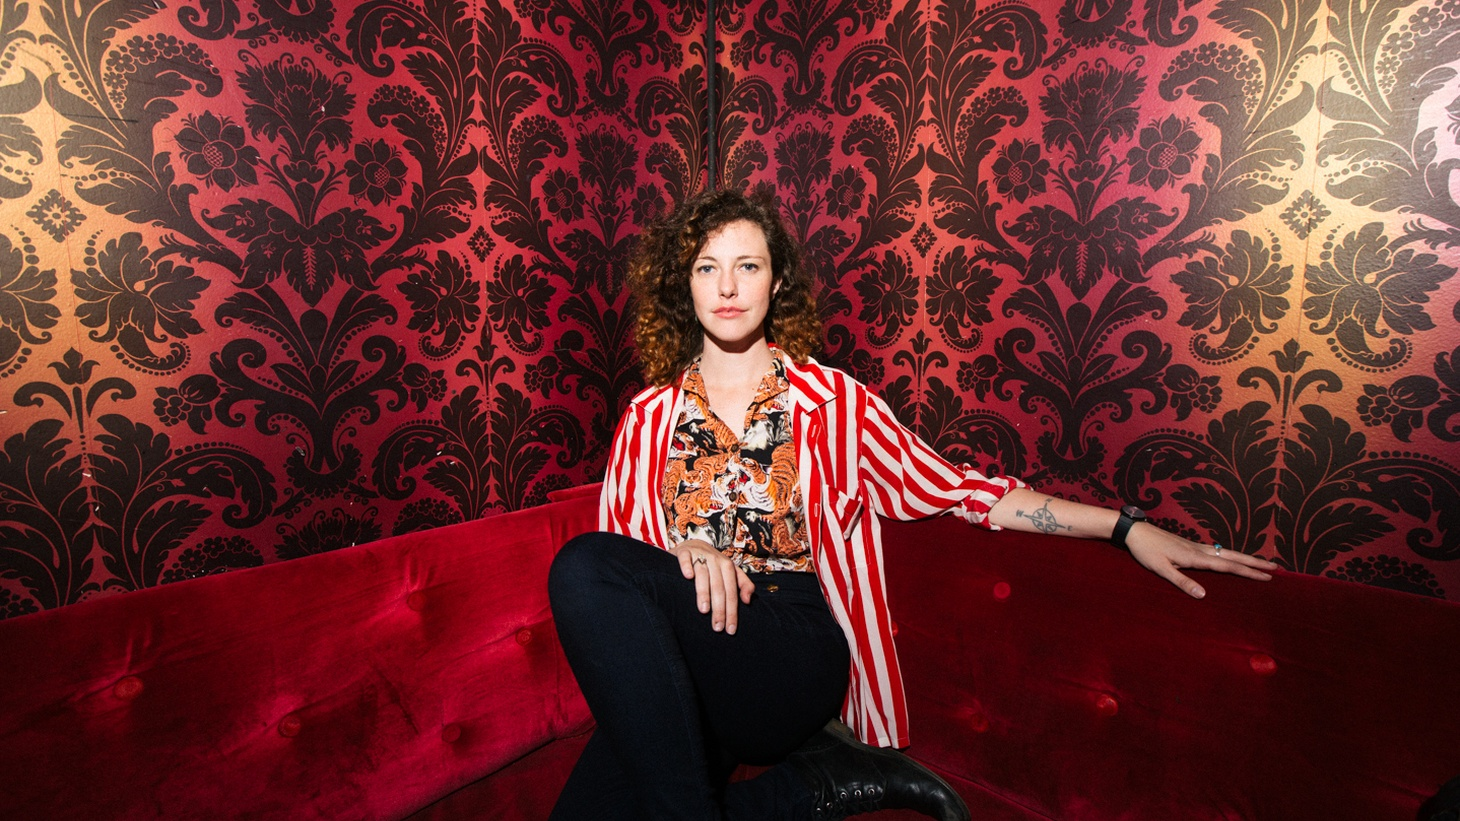 Esme Patterson turns off her brain and let's her body sing. It's her philosophy that at Rock n Roll's core our animal nature meets our hearts and minds.